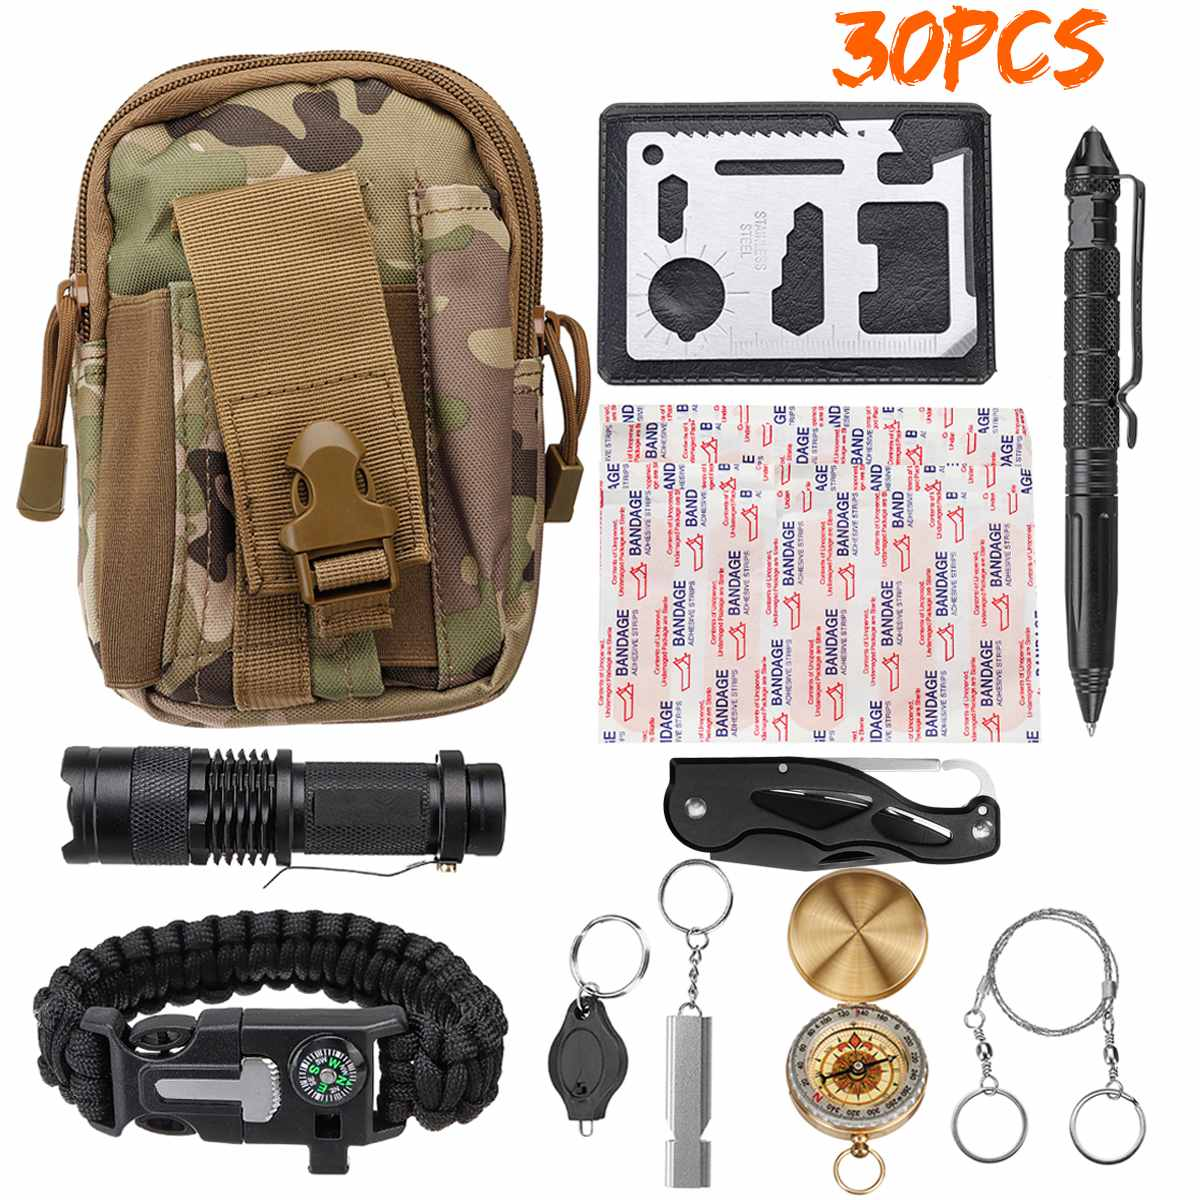 16/30Pcs One Set First Aid Kits Multifunction Outdoor Emergency SOS Tactical Survive Tools For Wilderness Camping Travel